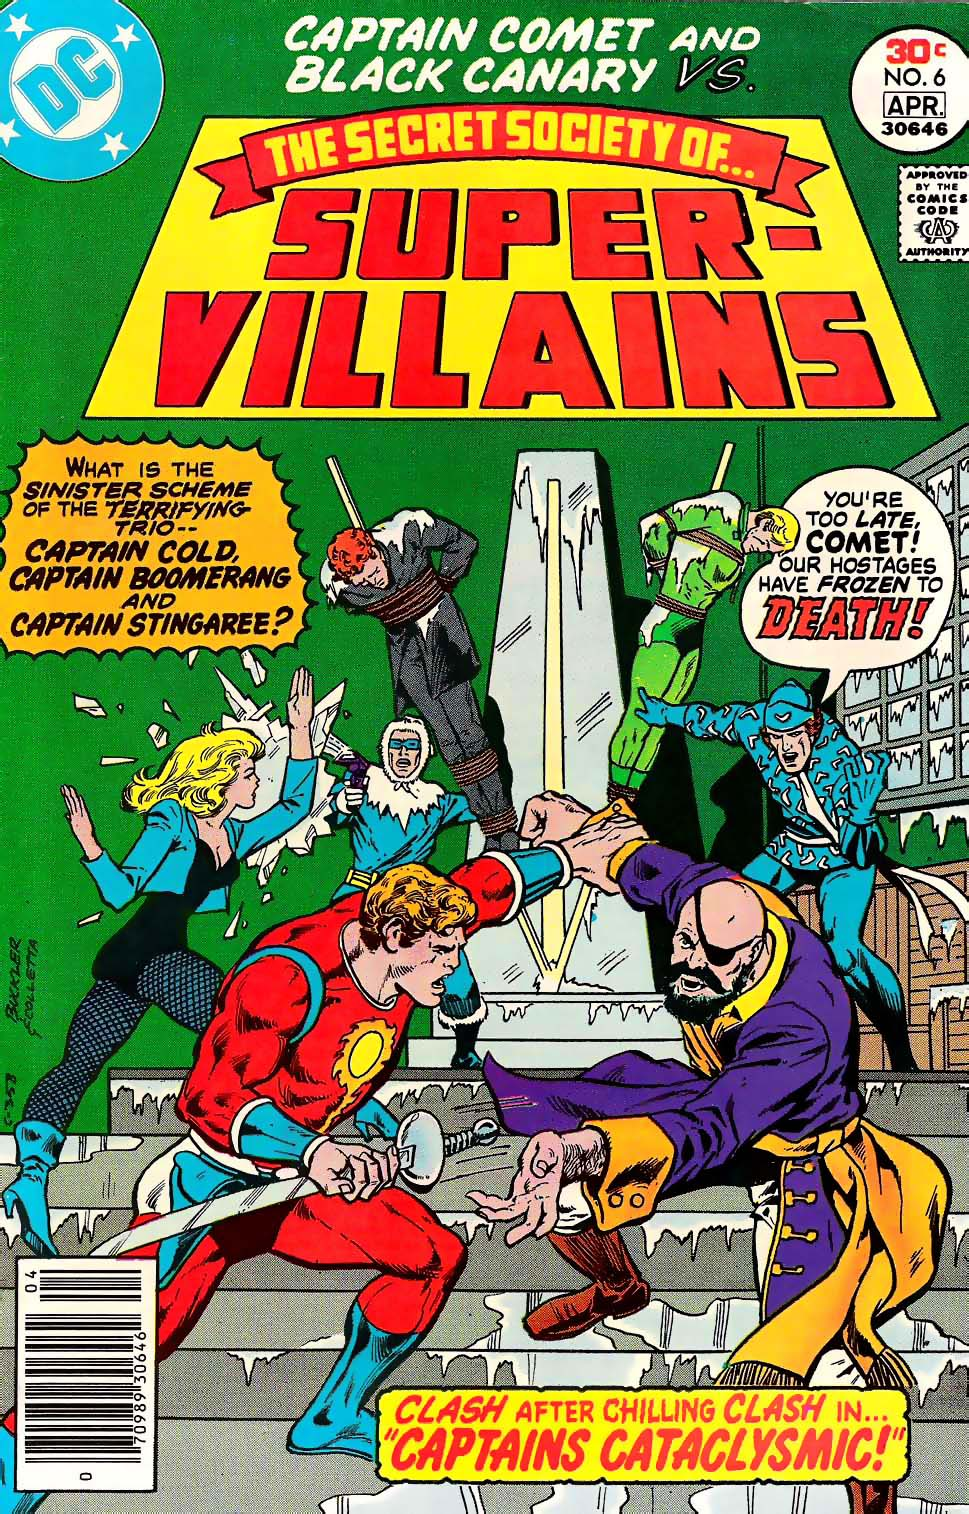 Read online Secret Society of Super-Villains comic -  Issue #6 - 1